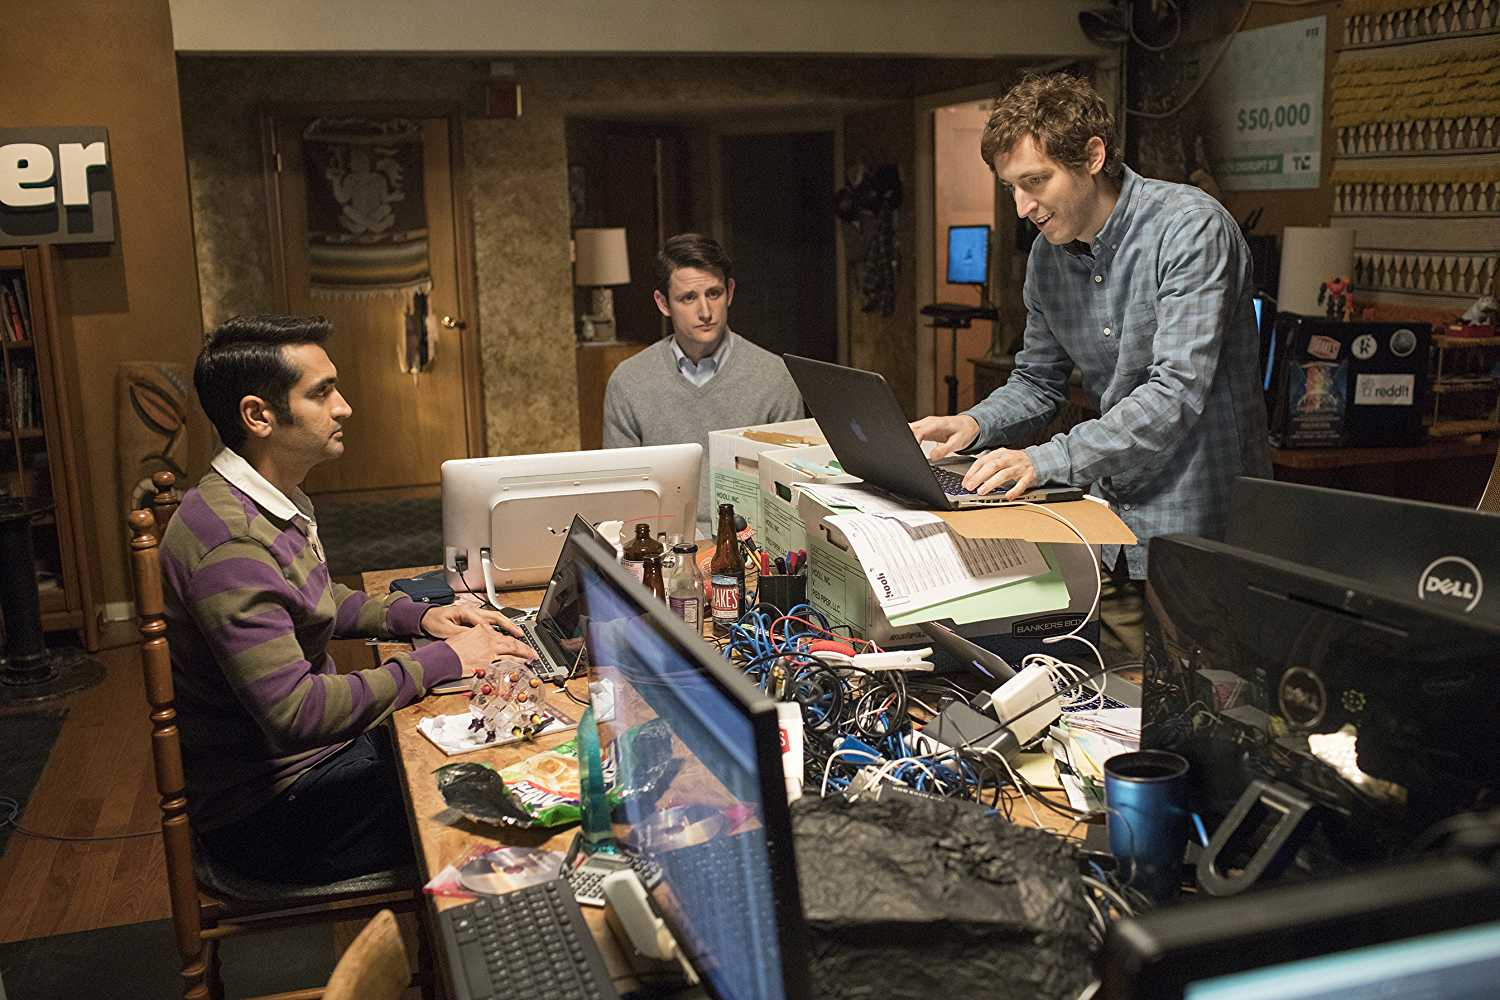 'Silicon Valley' is one of the better comedies streaming currently (Source: IMDb)